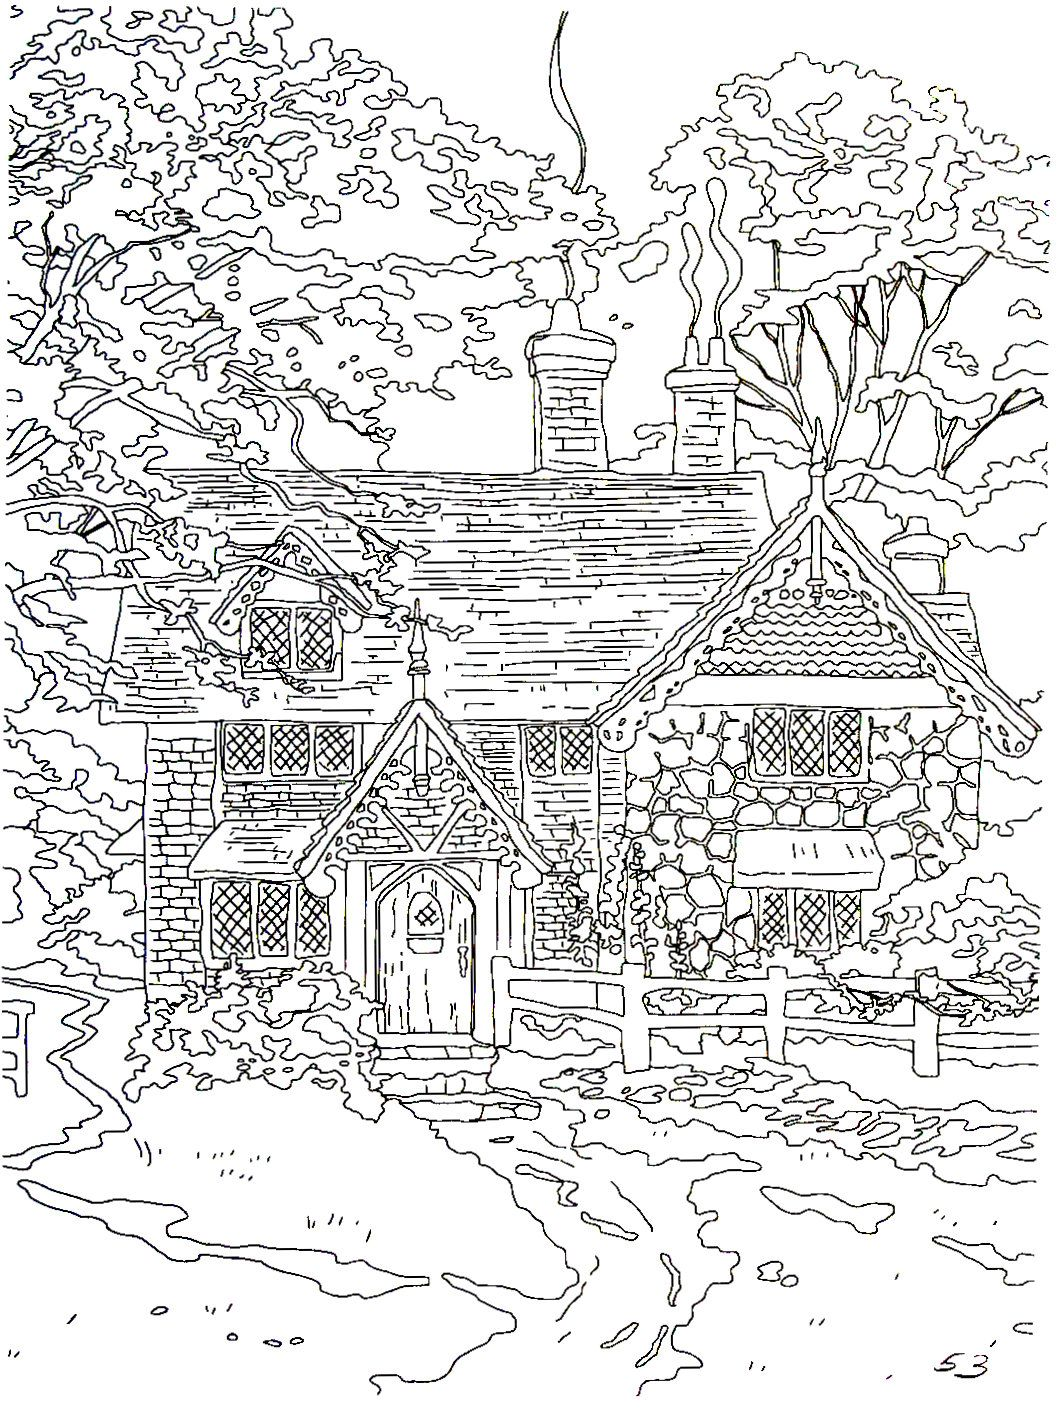 Gingerbread cottage thomas kinkade painting coloring book printable page